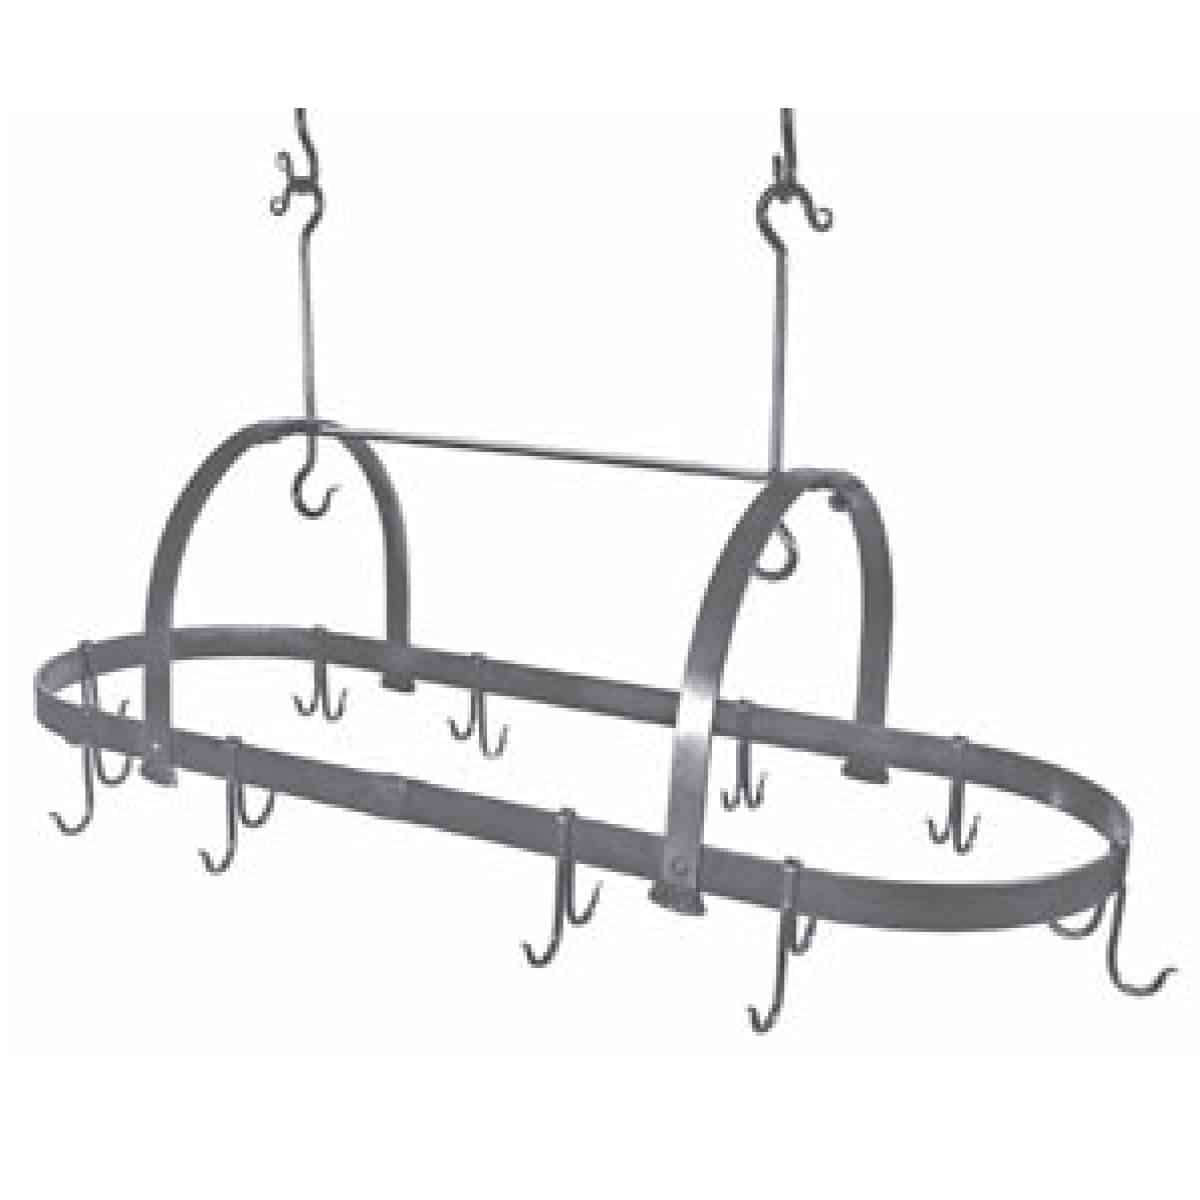 Oval Pot Rack, no bars